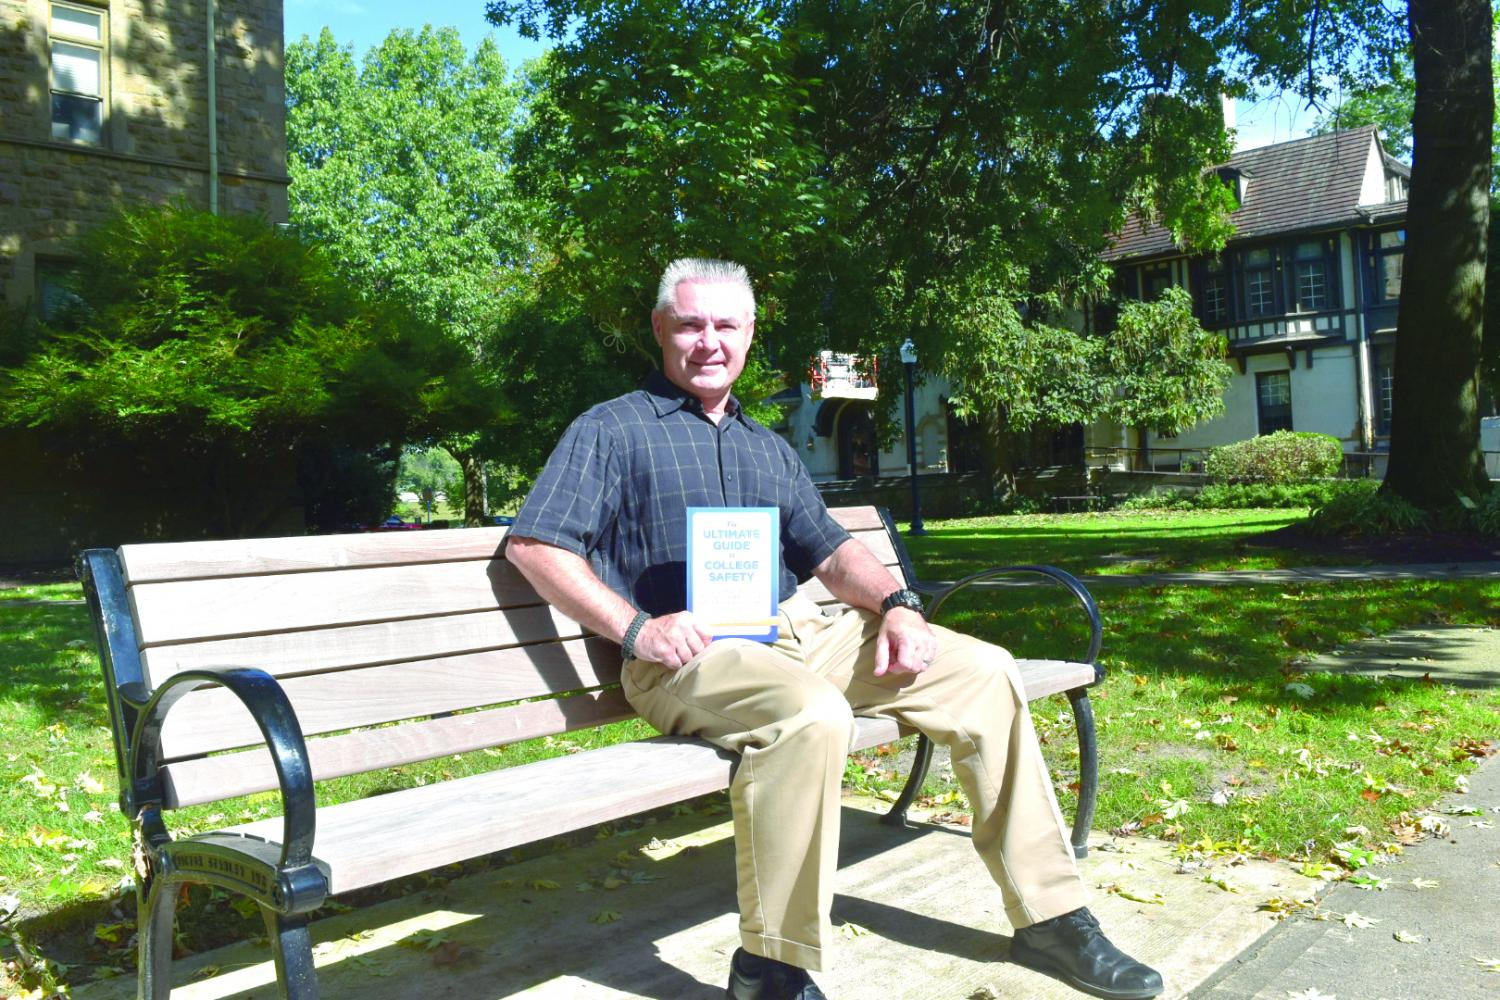 Public safety officer Peter J. Canavan stands with his newly published book on college campus safety.